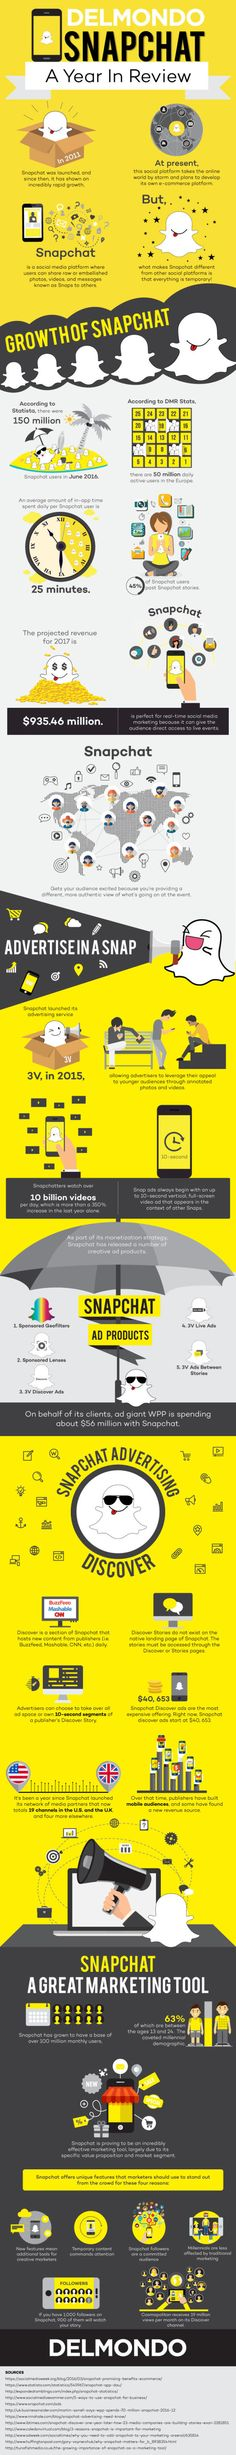 Ways to Use Snapchat for Marketing and Advertising in 2017